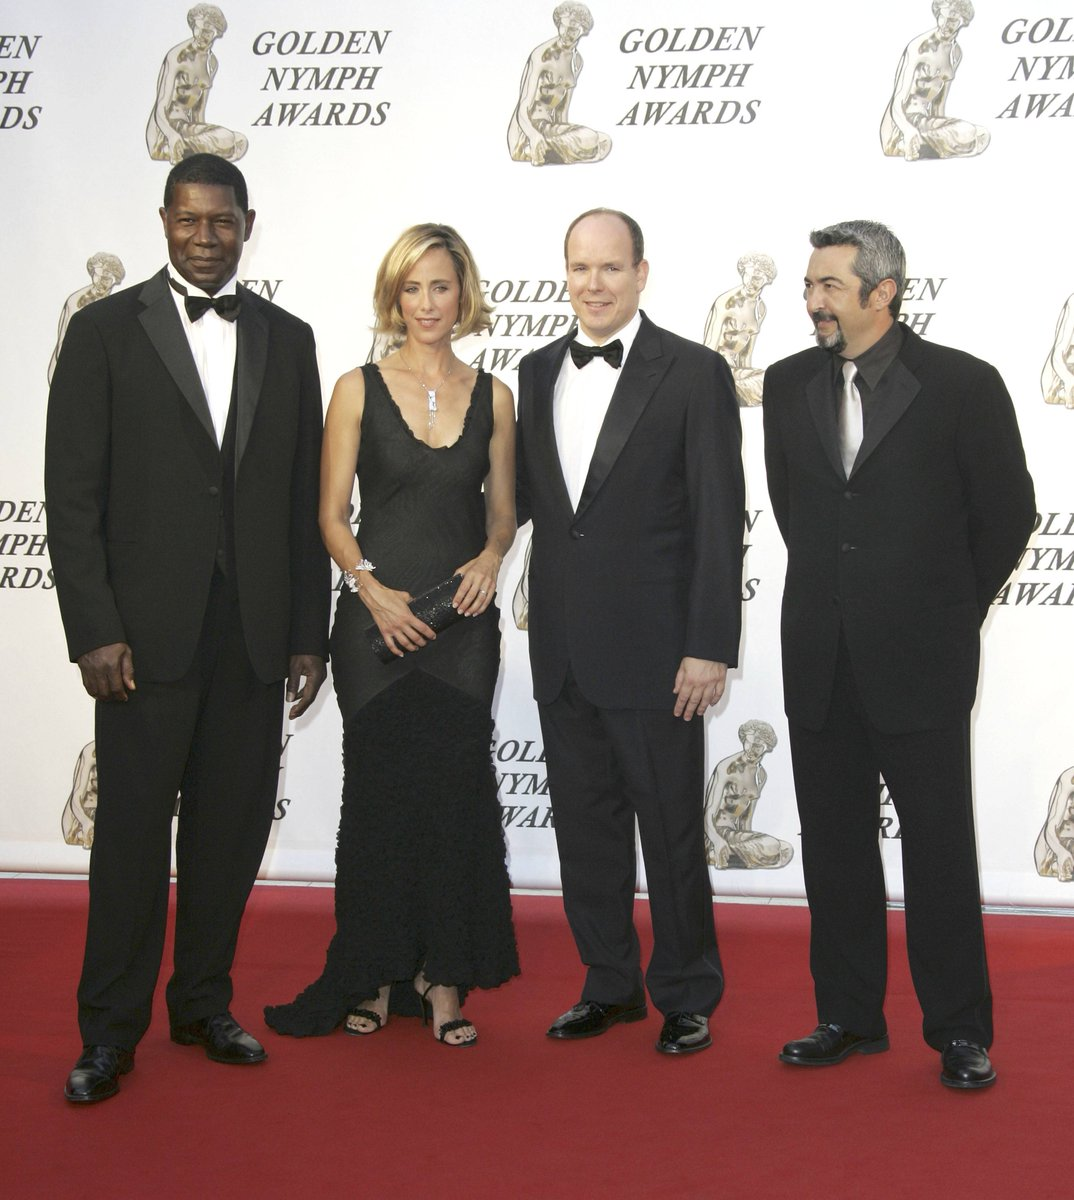 #ThrowbackThursday 24 Being honored by the prince of Monaco. I'm with actors #DennisHaysbert and #KimRaver  accepting the award.